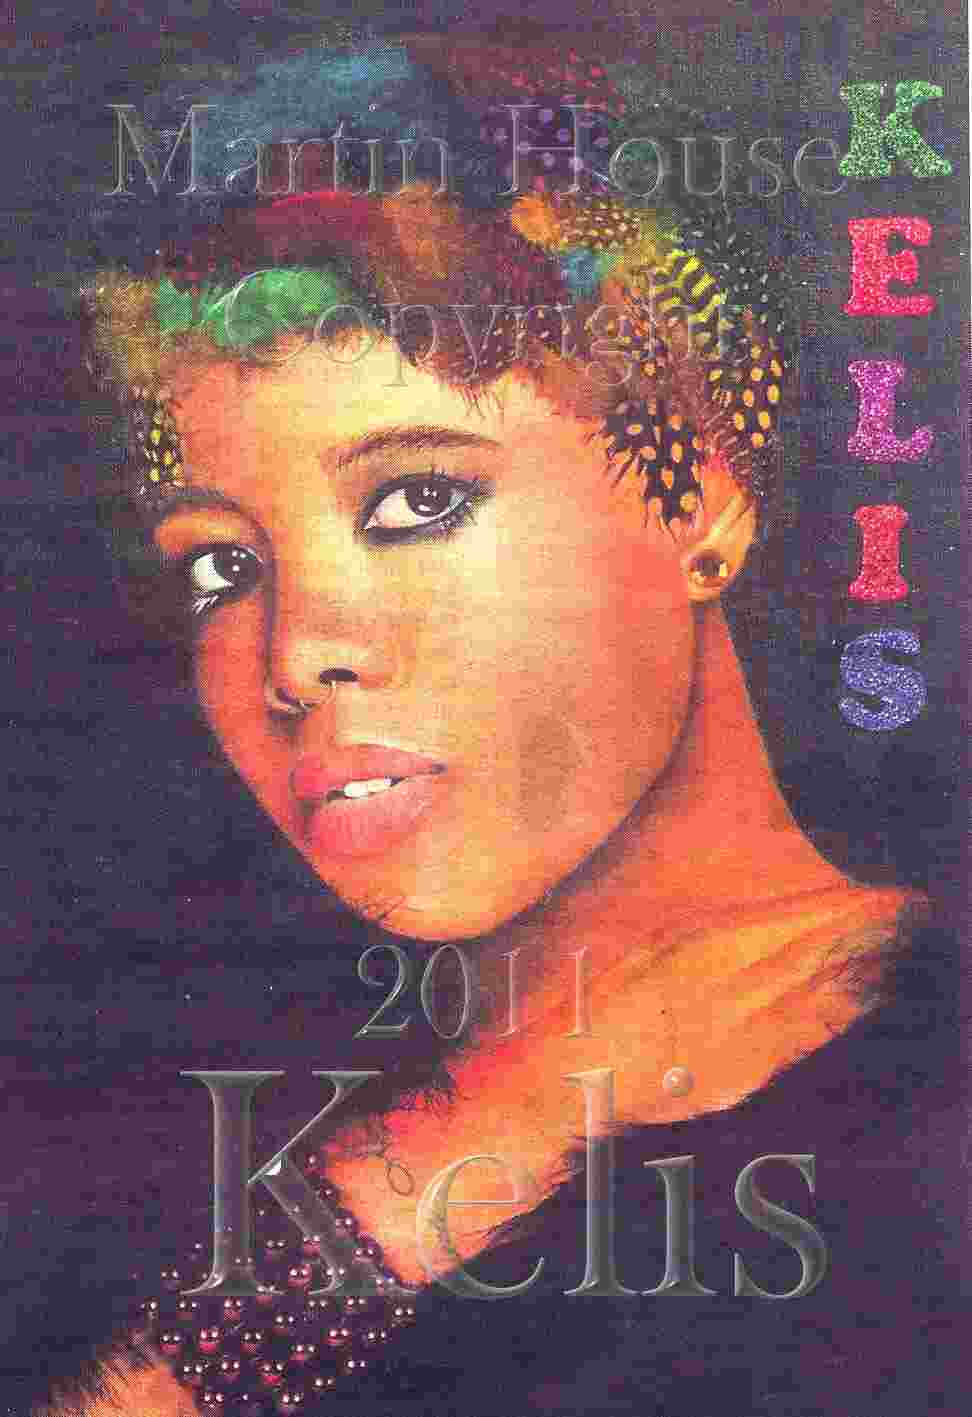 Kelis, original oil painting by Martin House